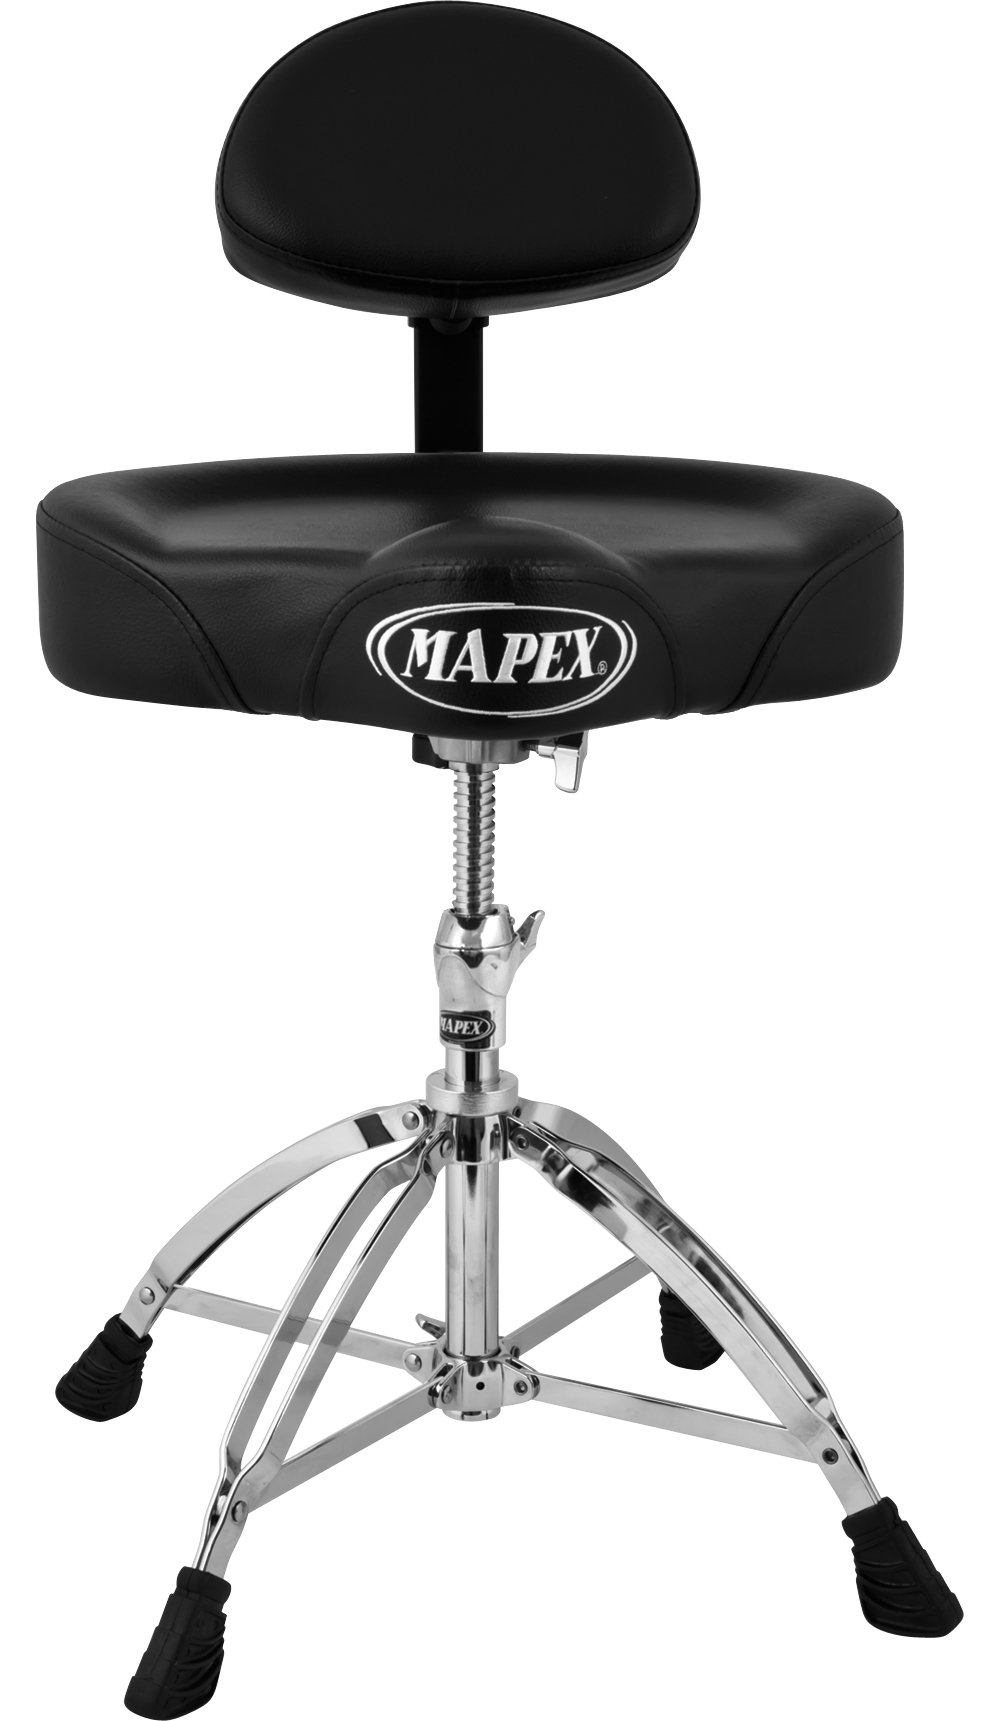 MAPEX T775 Double Braced Throne with Height Adjustment and Back Rest, Saddle Seat